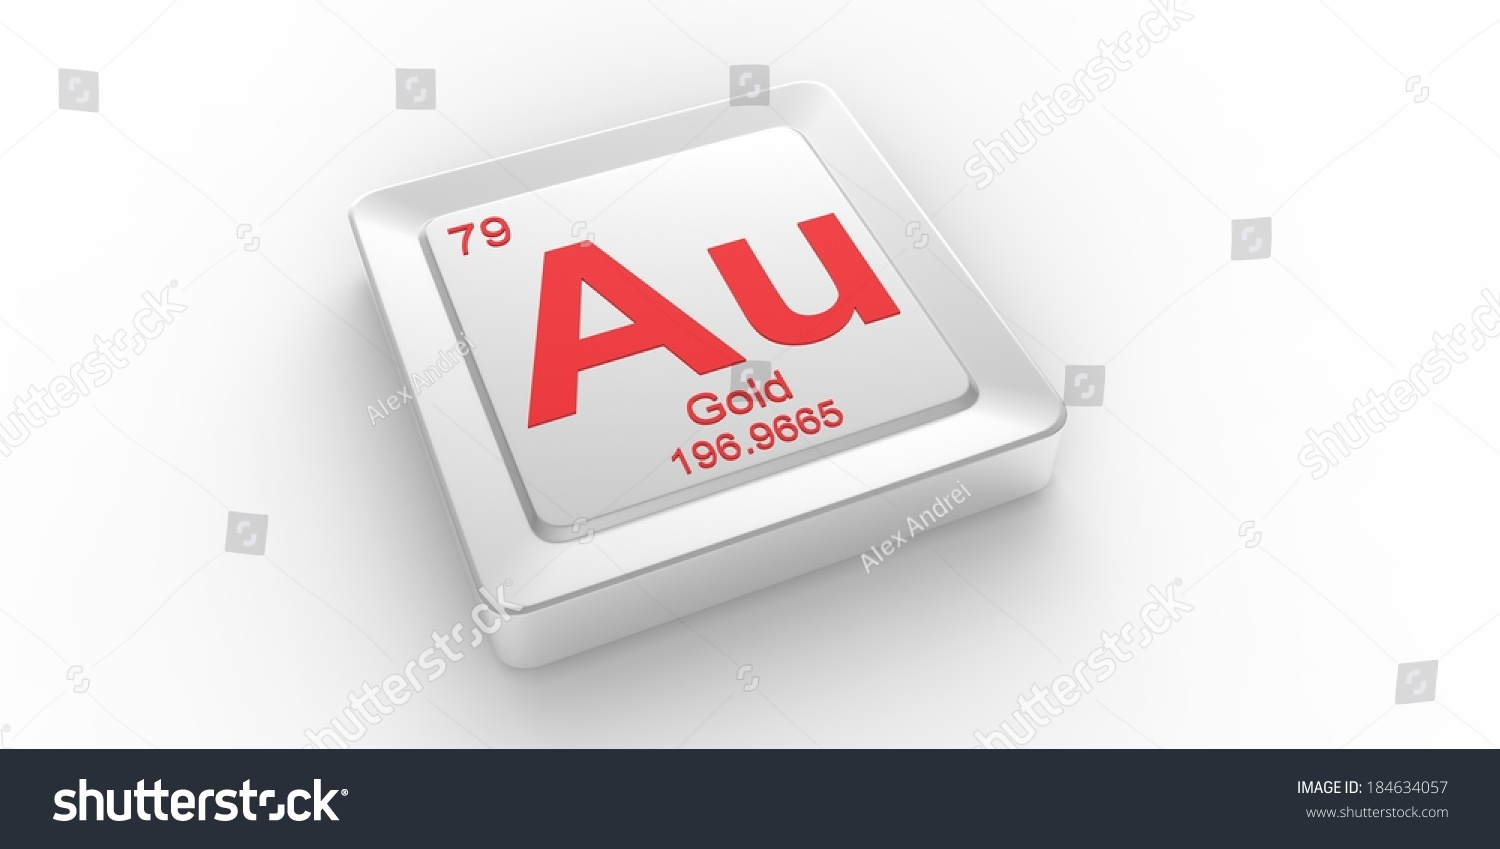 Au symbol 79 material gold chemical stock illustration 184634057 au symbol 79 material for gold chemical element of the periodic table gamestrikefo Choice Image